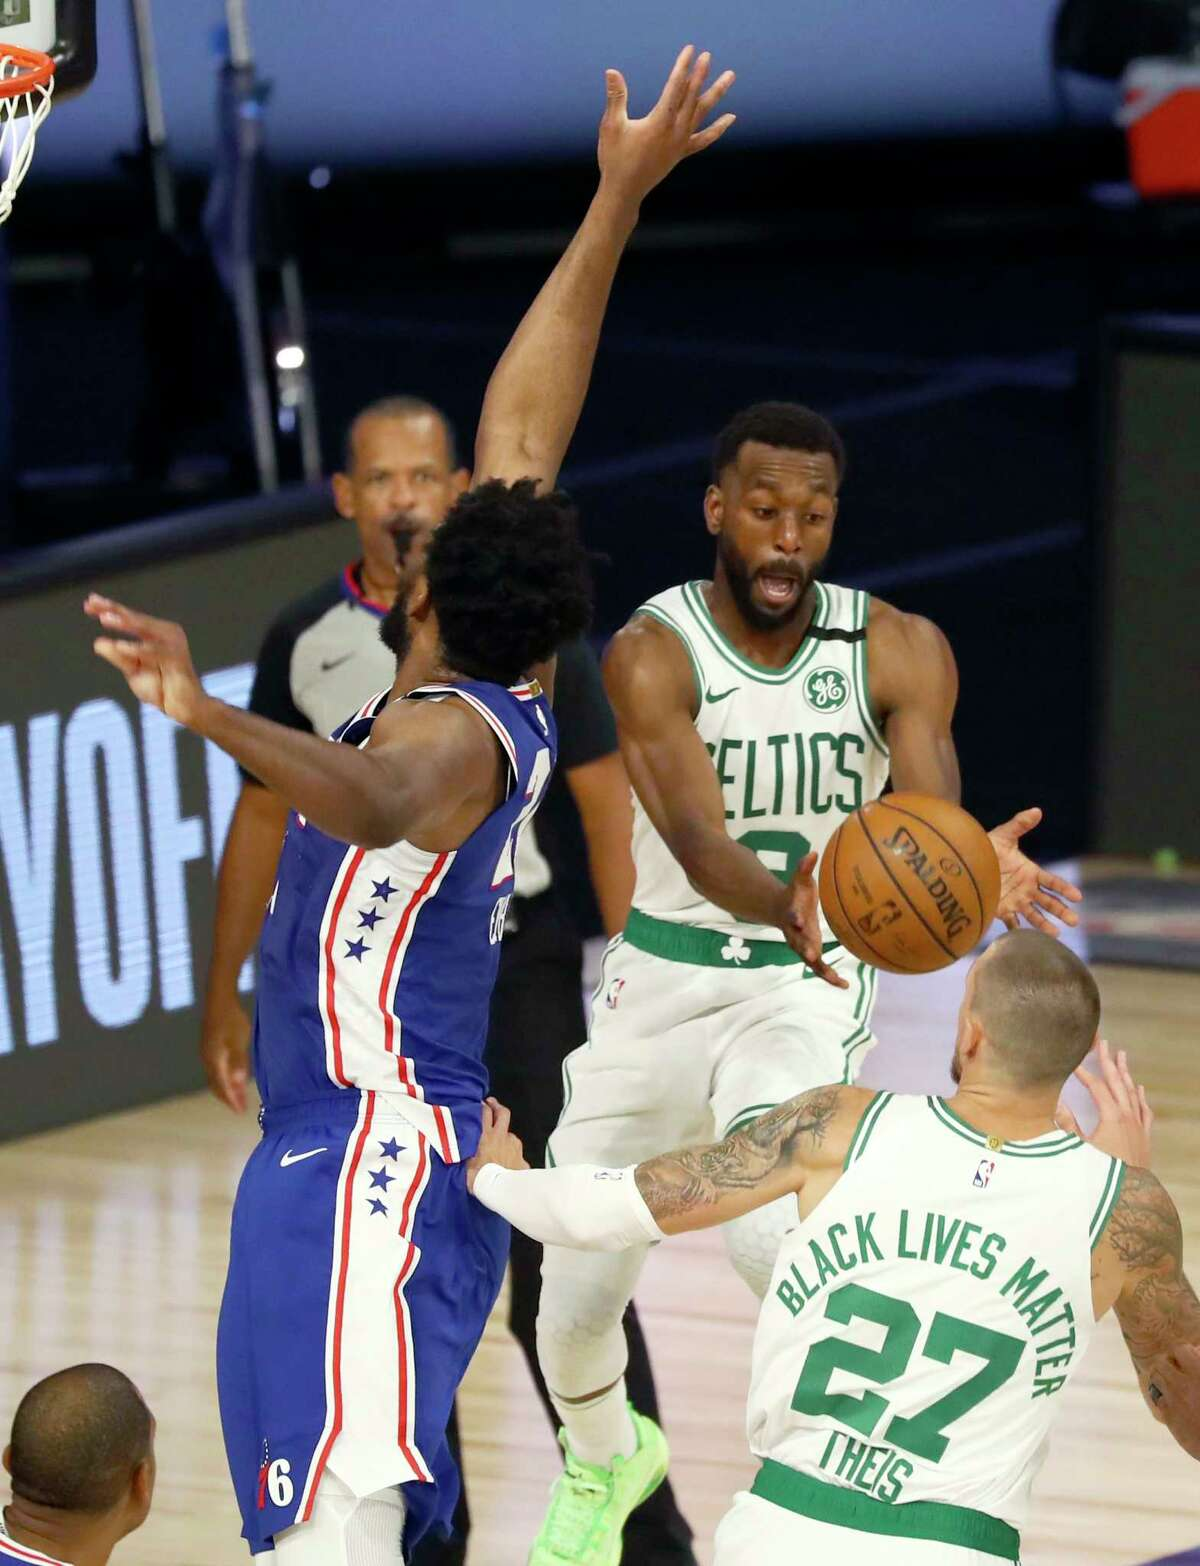 Boston Celtics guard Kemba Walker (8) passes the ball around Philadelphia 76ers center Joel Embiid, left, during the second quarter of Game 4 of an NBA basketball first-round playoff series, Sunday, Aug. 23, 2020, in Lake Buena Vista, Fla. (Kim Klement/Pool Photo via AP)